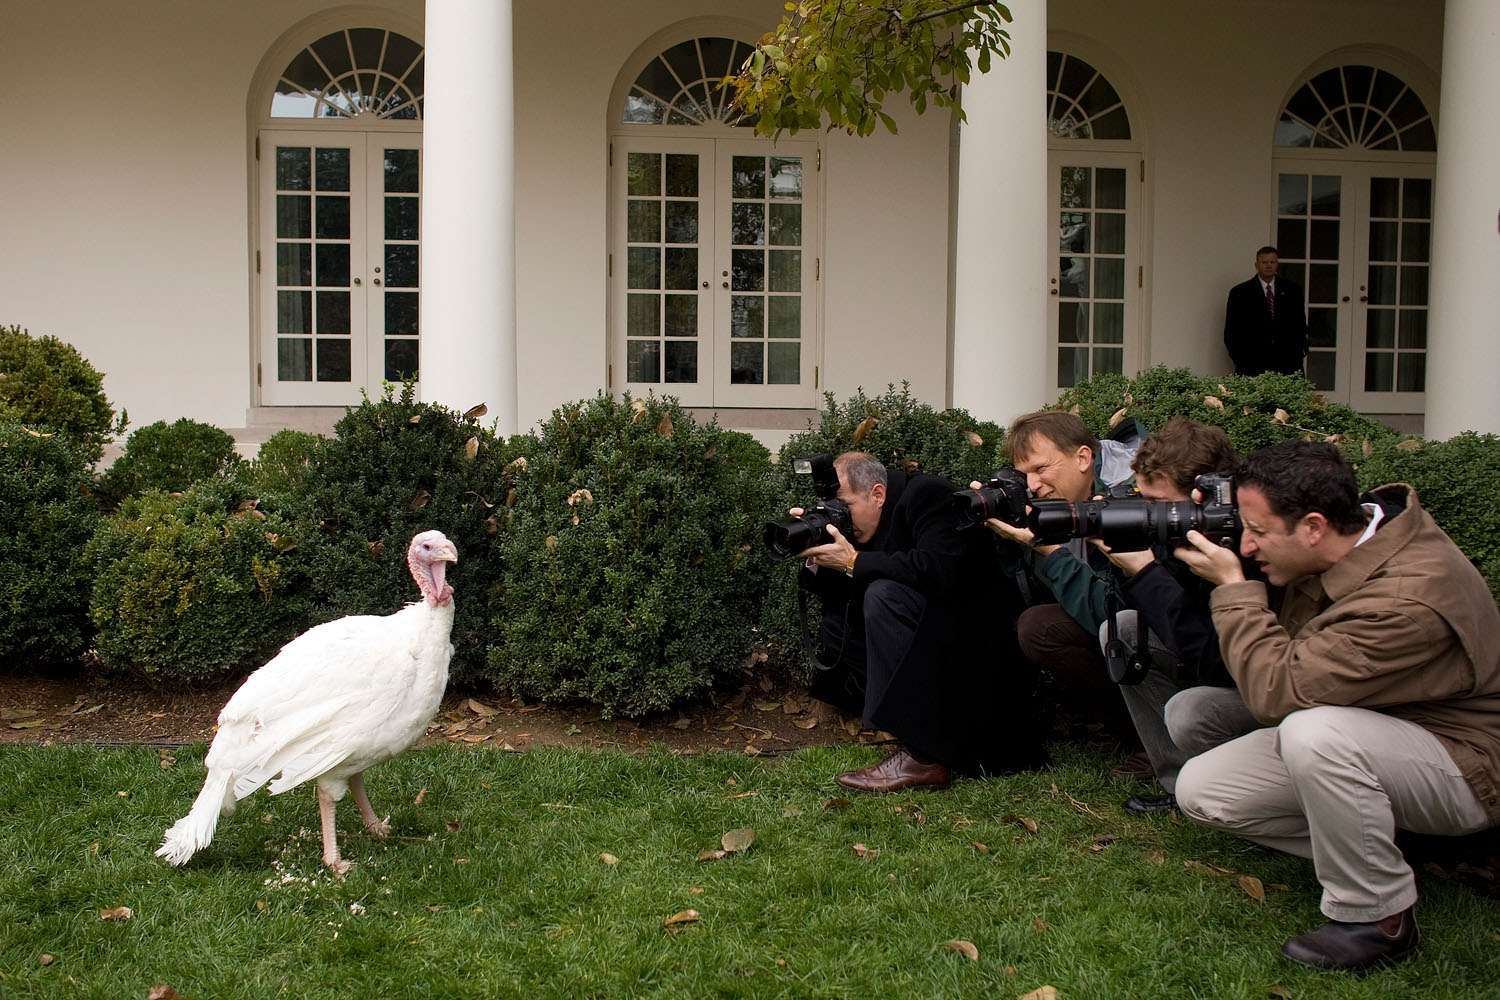 Photographers shoot pictures of  May  before the pardon of the National Thanksgiving Turkey during a ceremony in the Rose Garden of the White House, November 20, 2007.